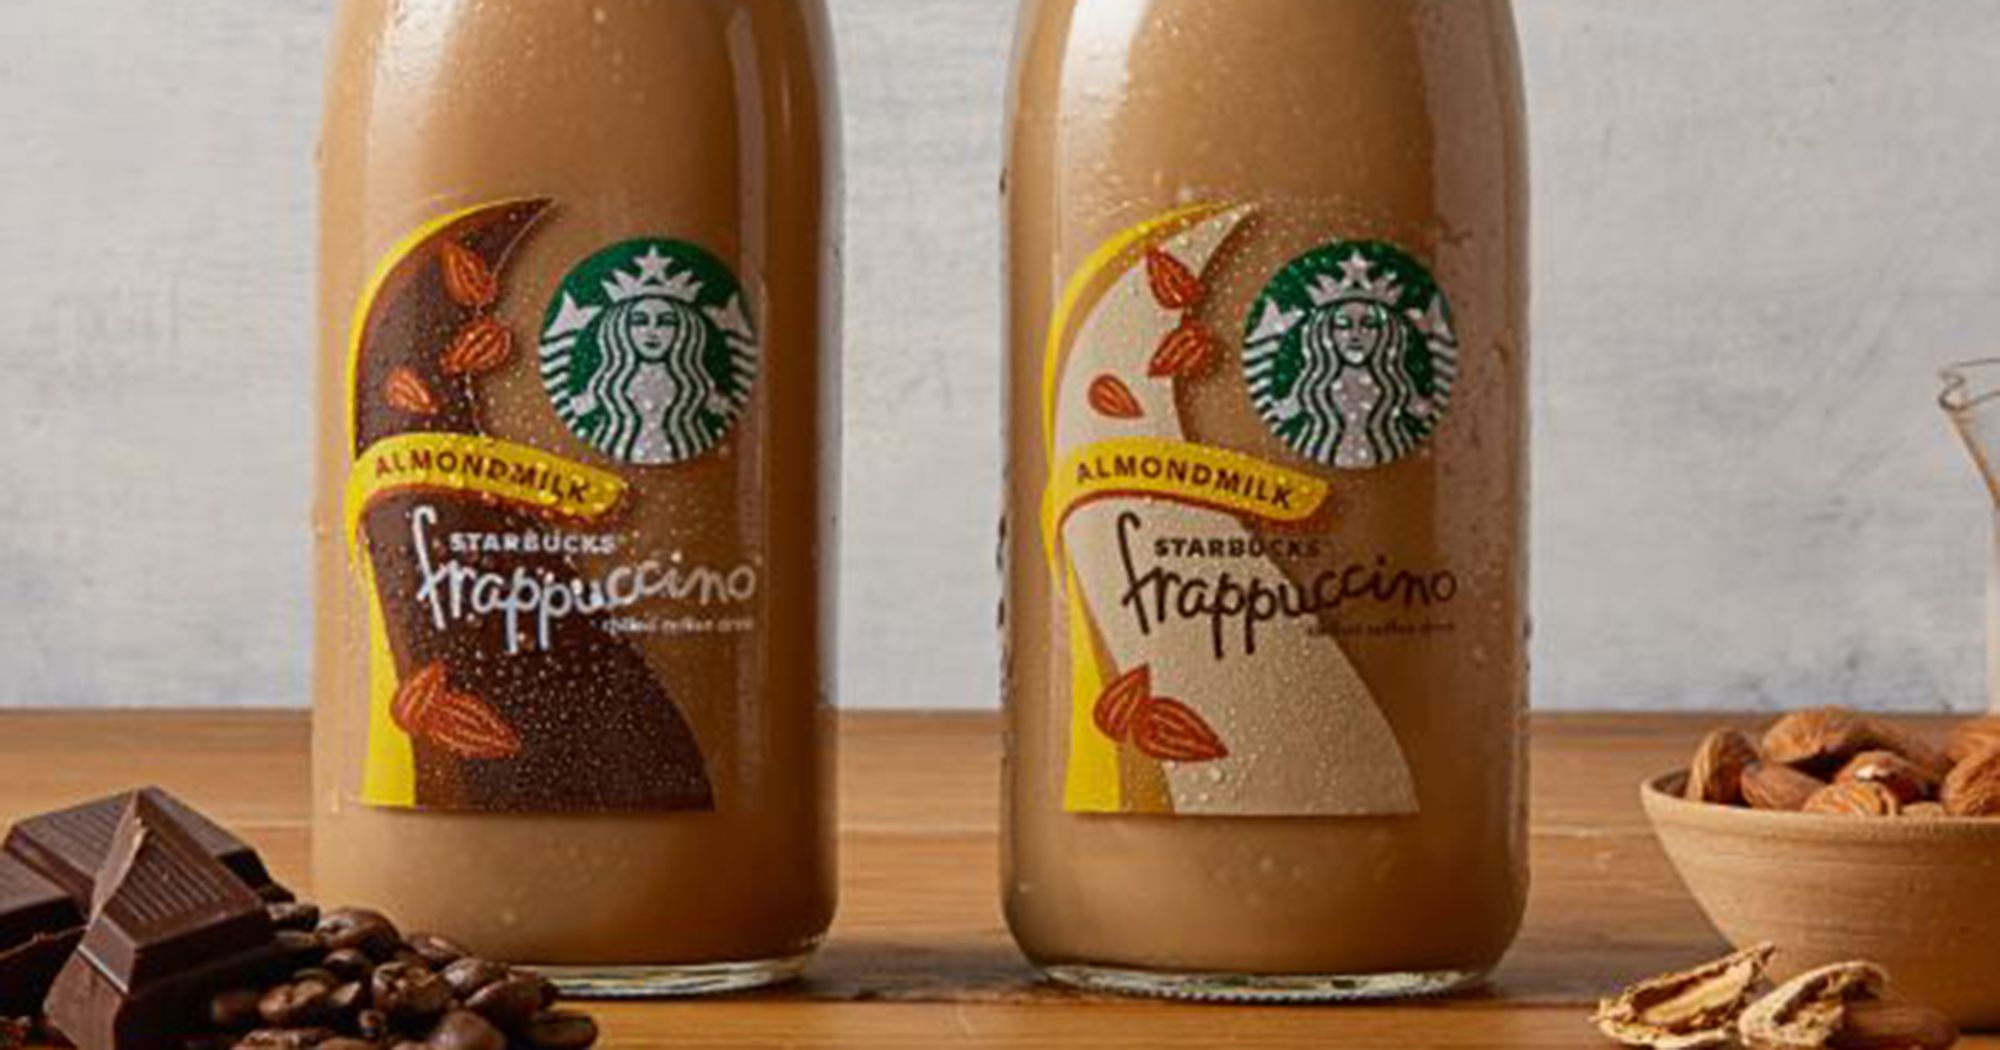 Starbucks Bottled Almond Milk Frappuccinos